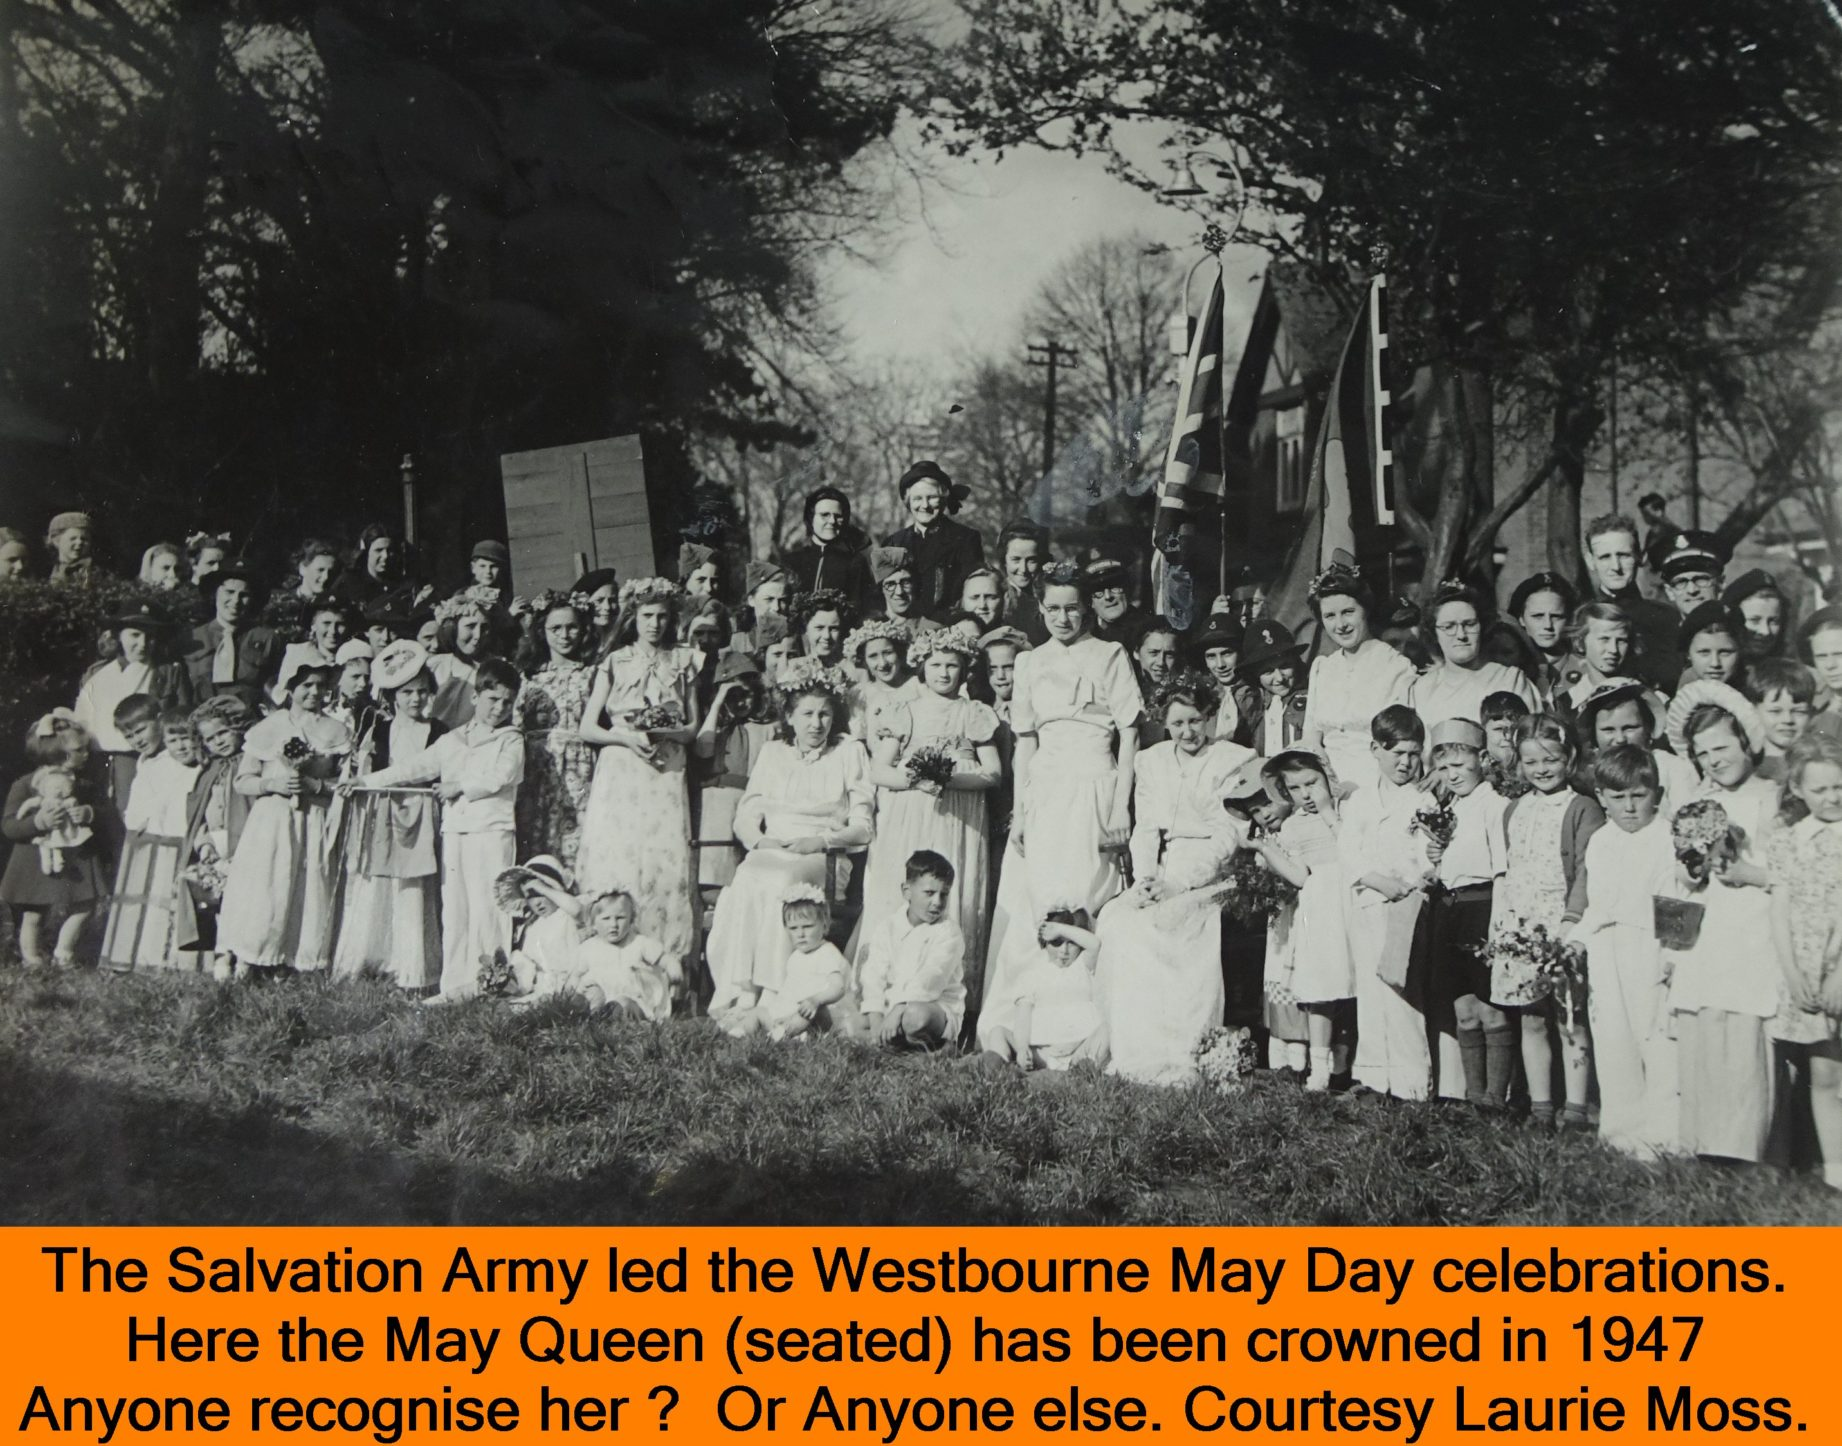 WESTBOURNE HISTORY PHOTO, SALVATION ARMY, BAND, MAY DAY, QUEEN, 1947, LAURIE MOSS,